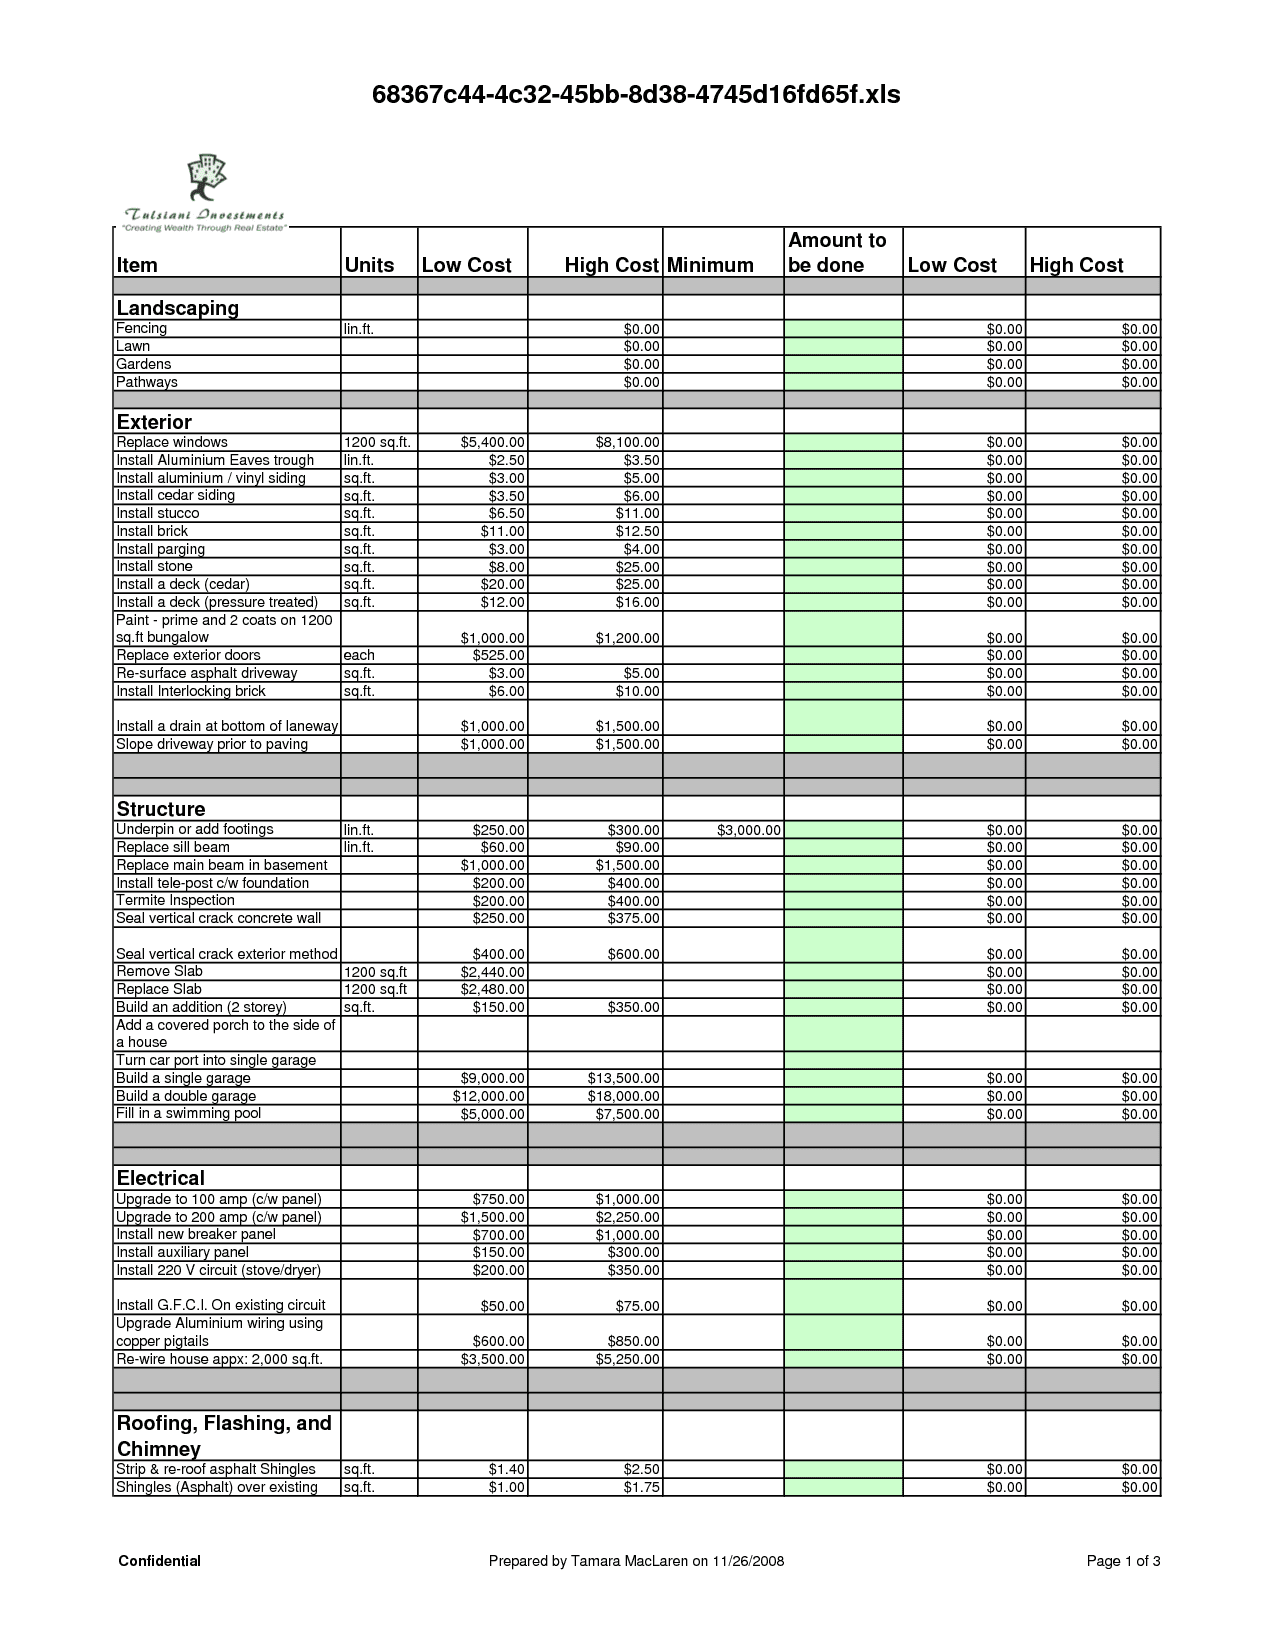 Renovation Spreadsheet Template Spreadsheet Templates For Busines Free Templates For Home